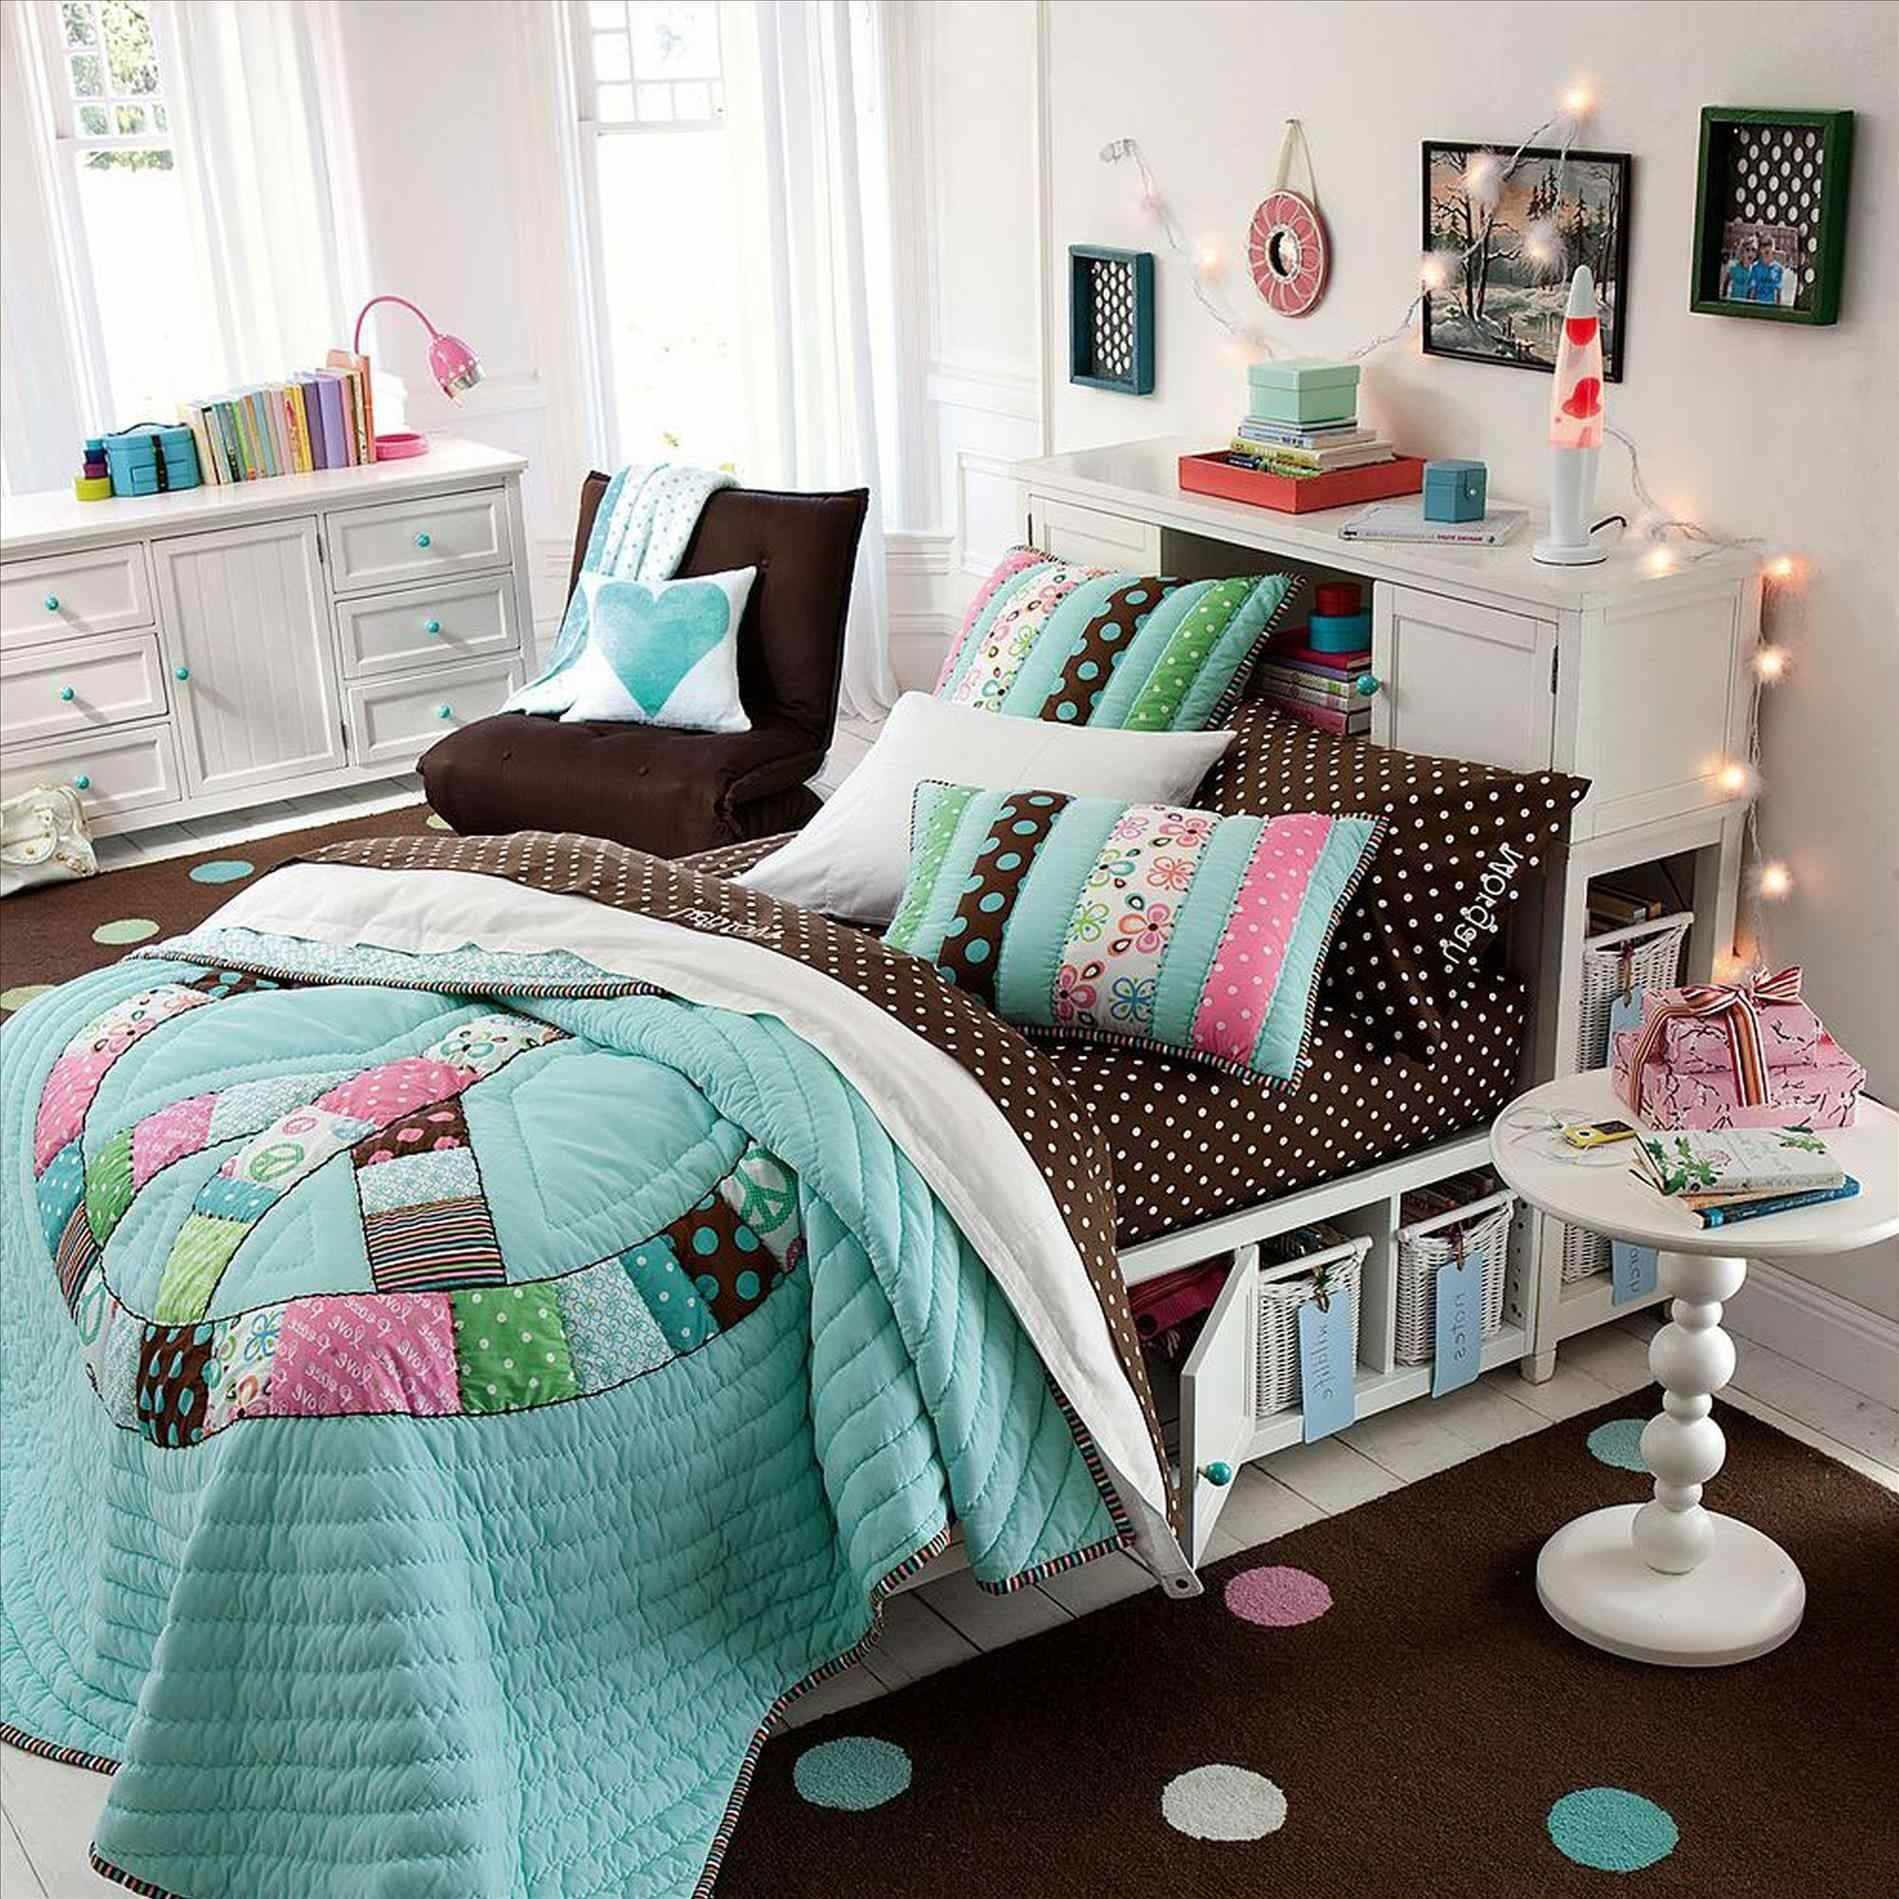 basement ideas for teenagers cool teen photos of the teens room decorating  a stud